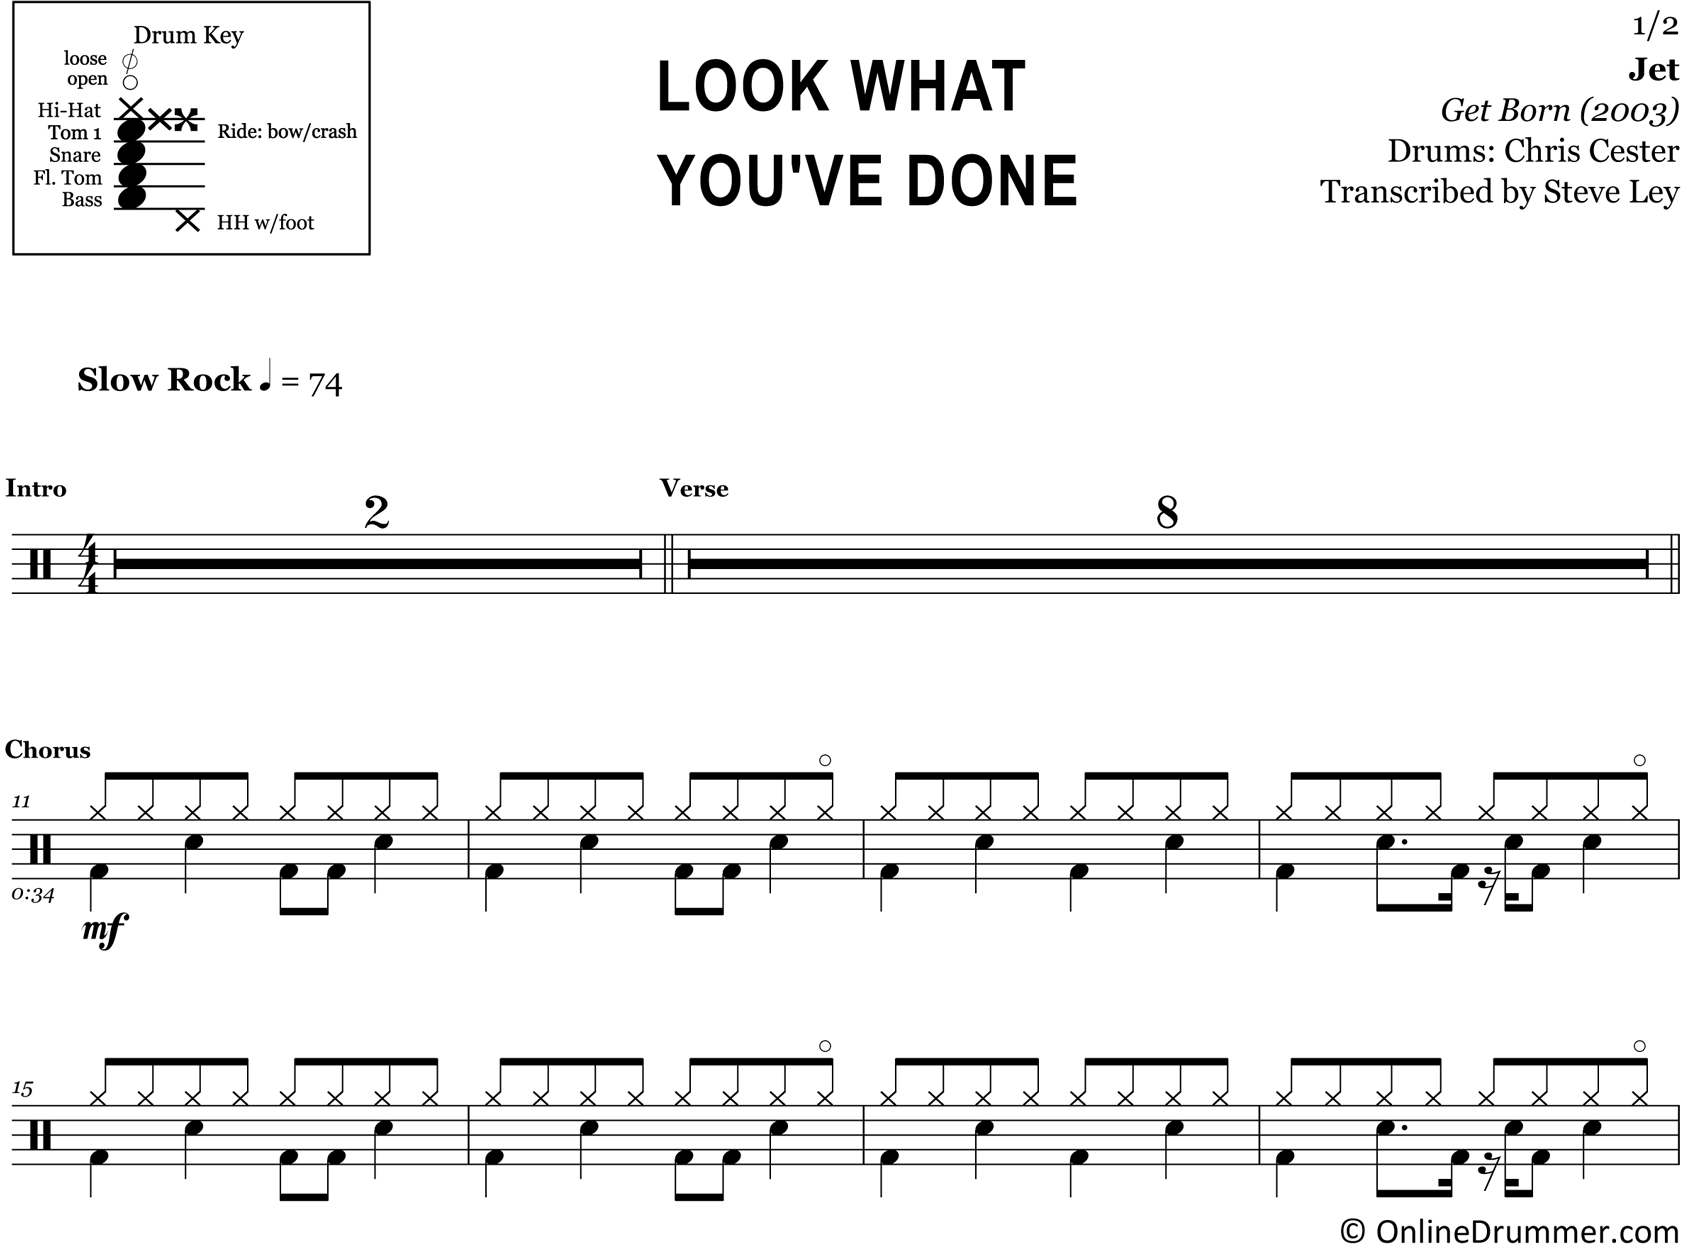 Look What You've Done - Jet - Drum Sheet Music